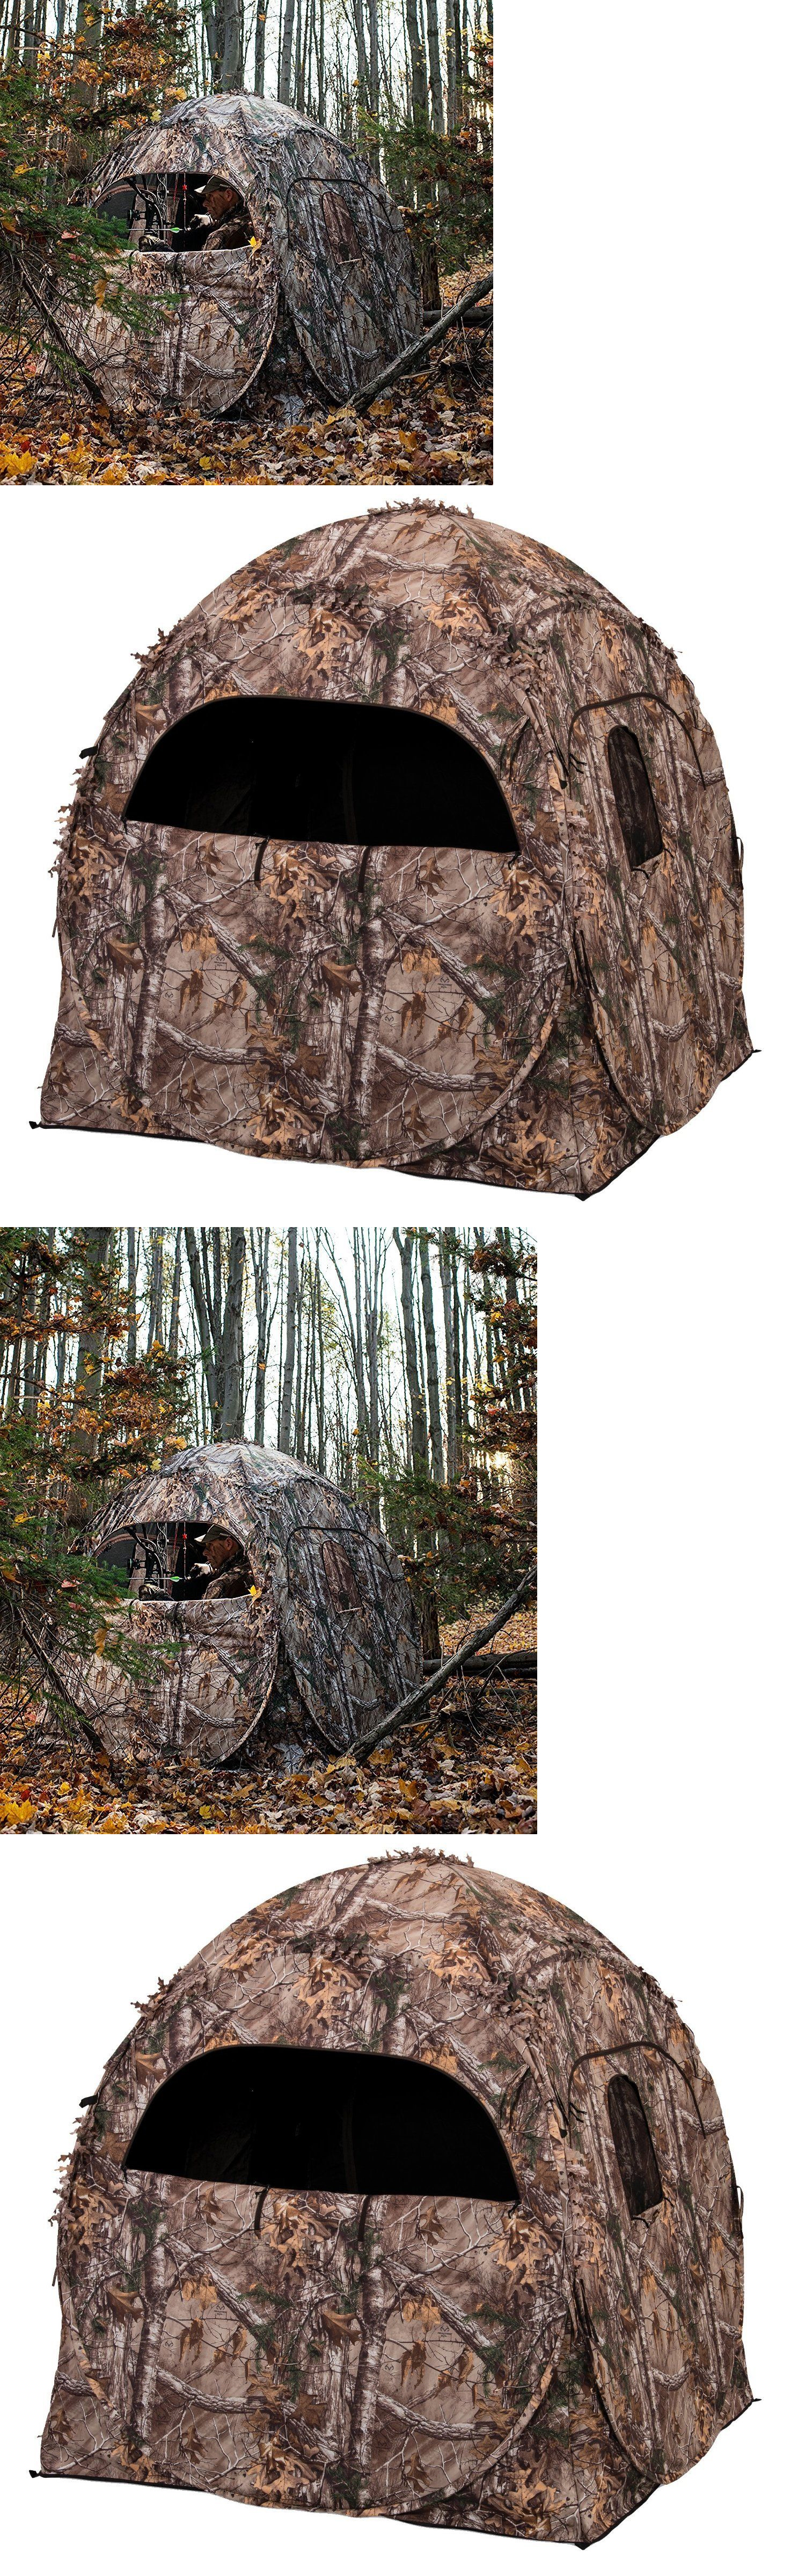 Blinds 177910 Camo Hunting Ground Blind Bird Watching Realtree Outdoor Gun Bow Deer Shooting -  sc 1 st  Pinterest & Blinds 177910: Camo Hunting Ground Blind Bird Watching Realtree ...